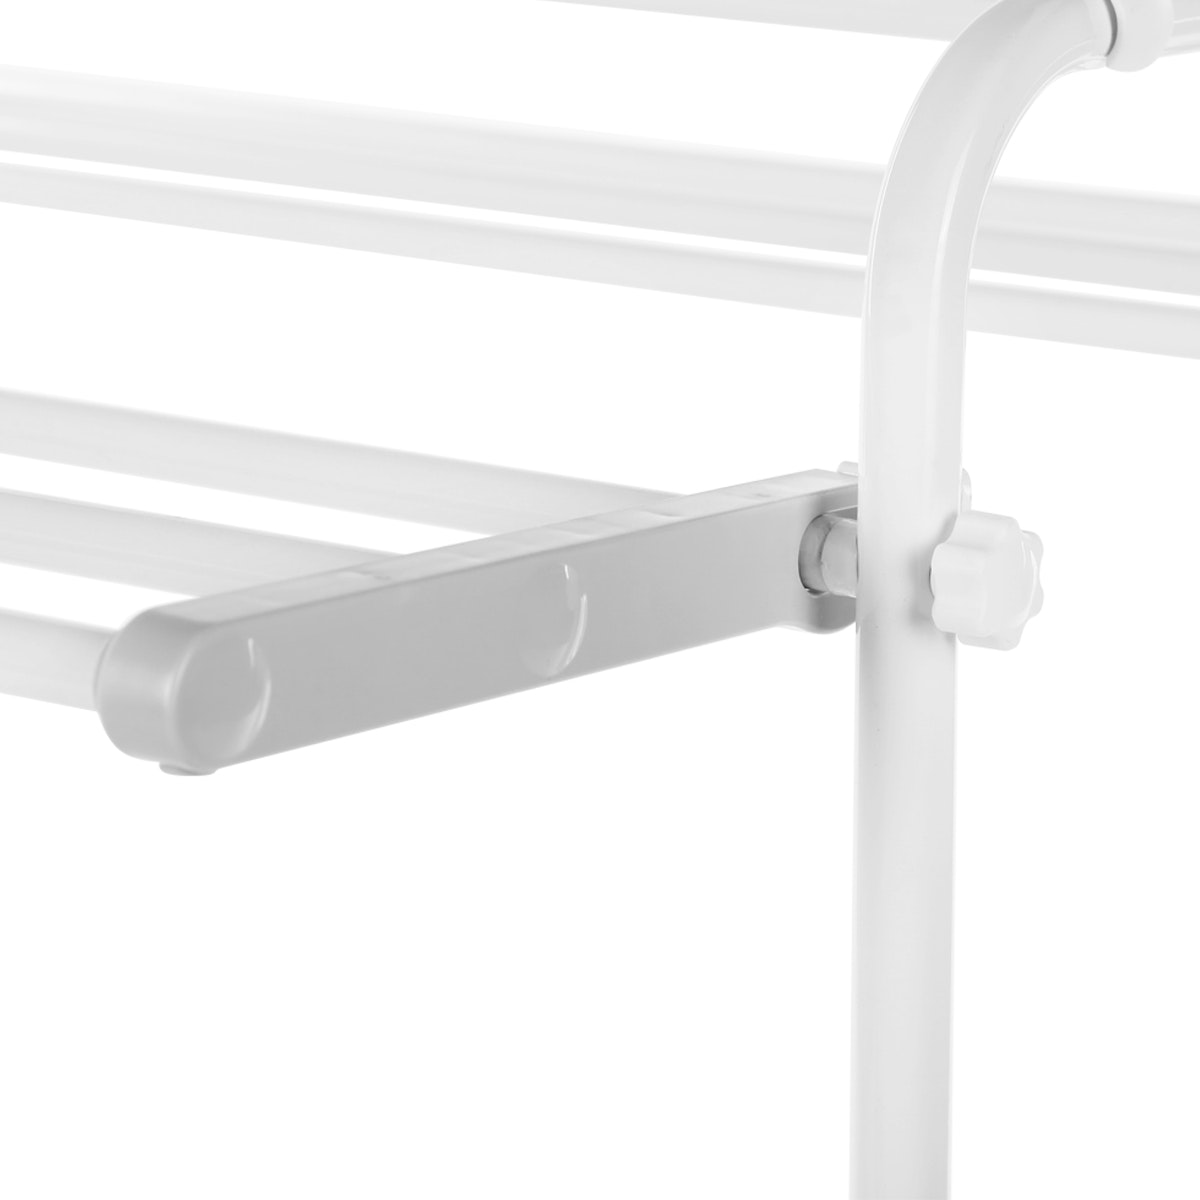 Mami1 Towel Rack M-229